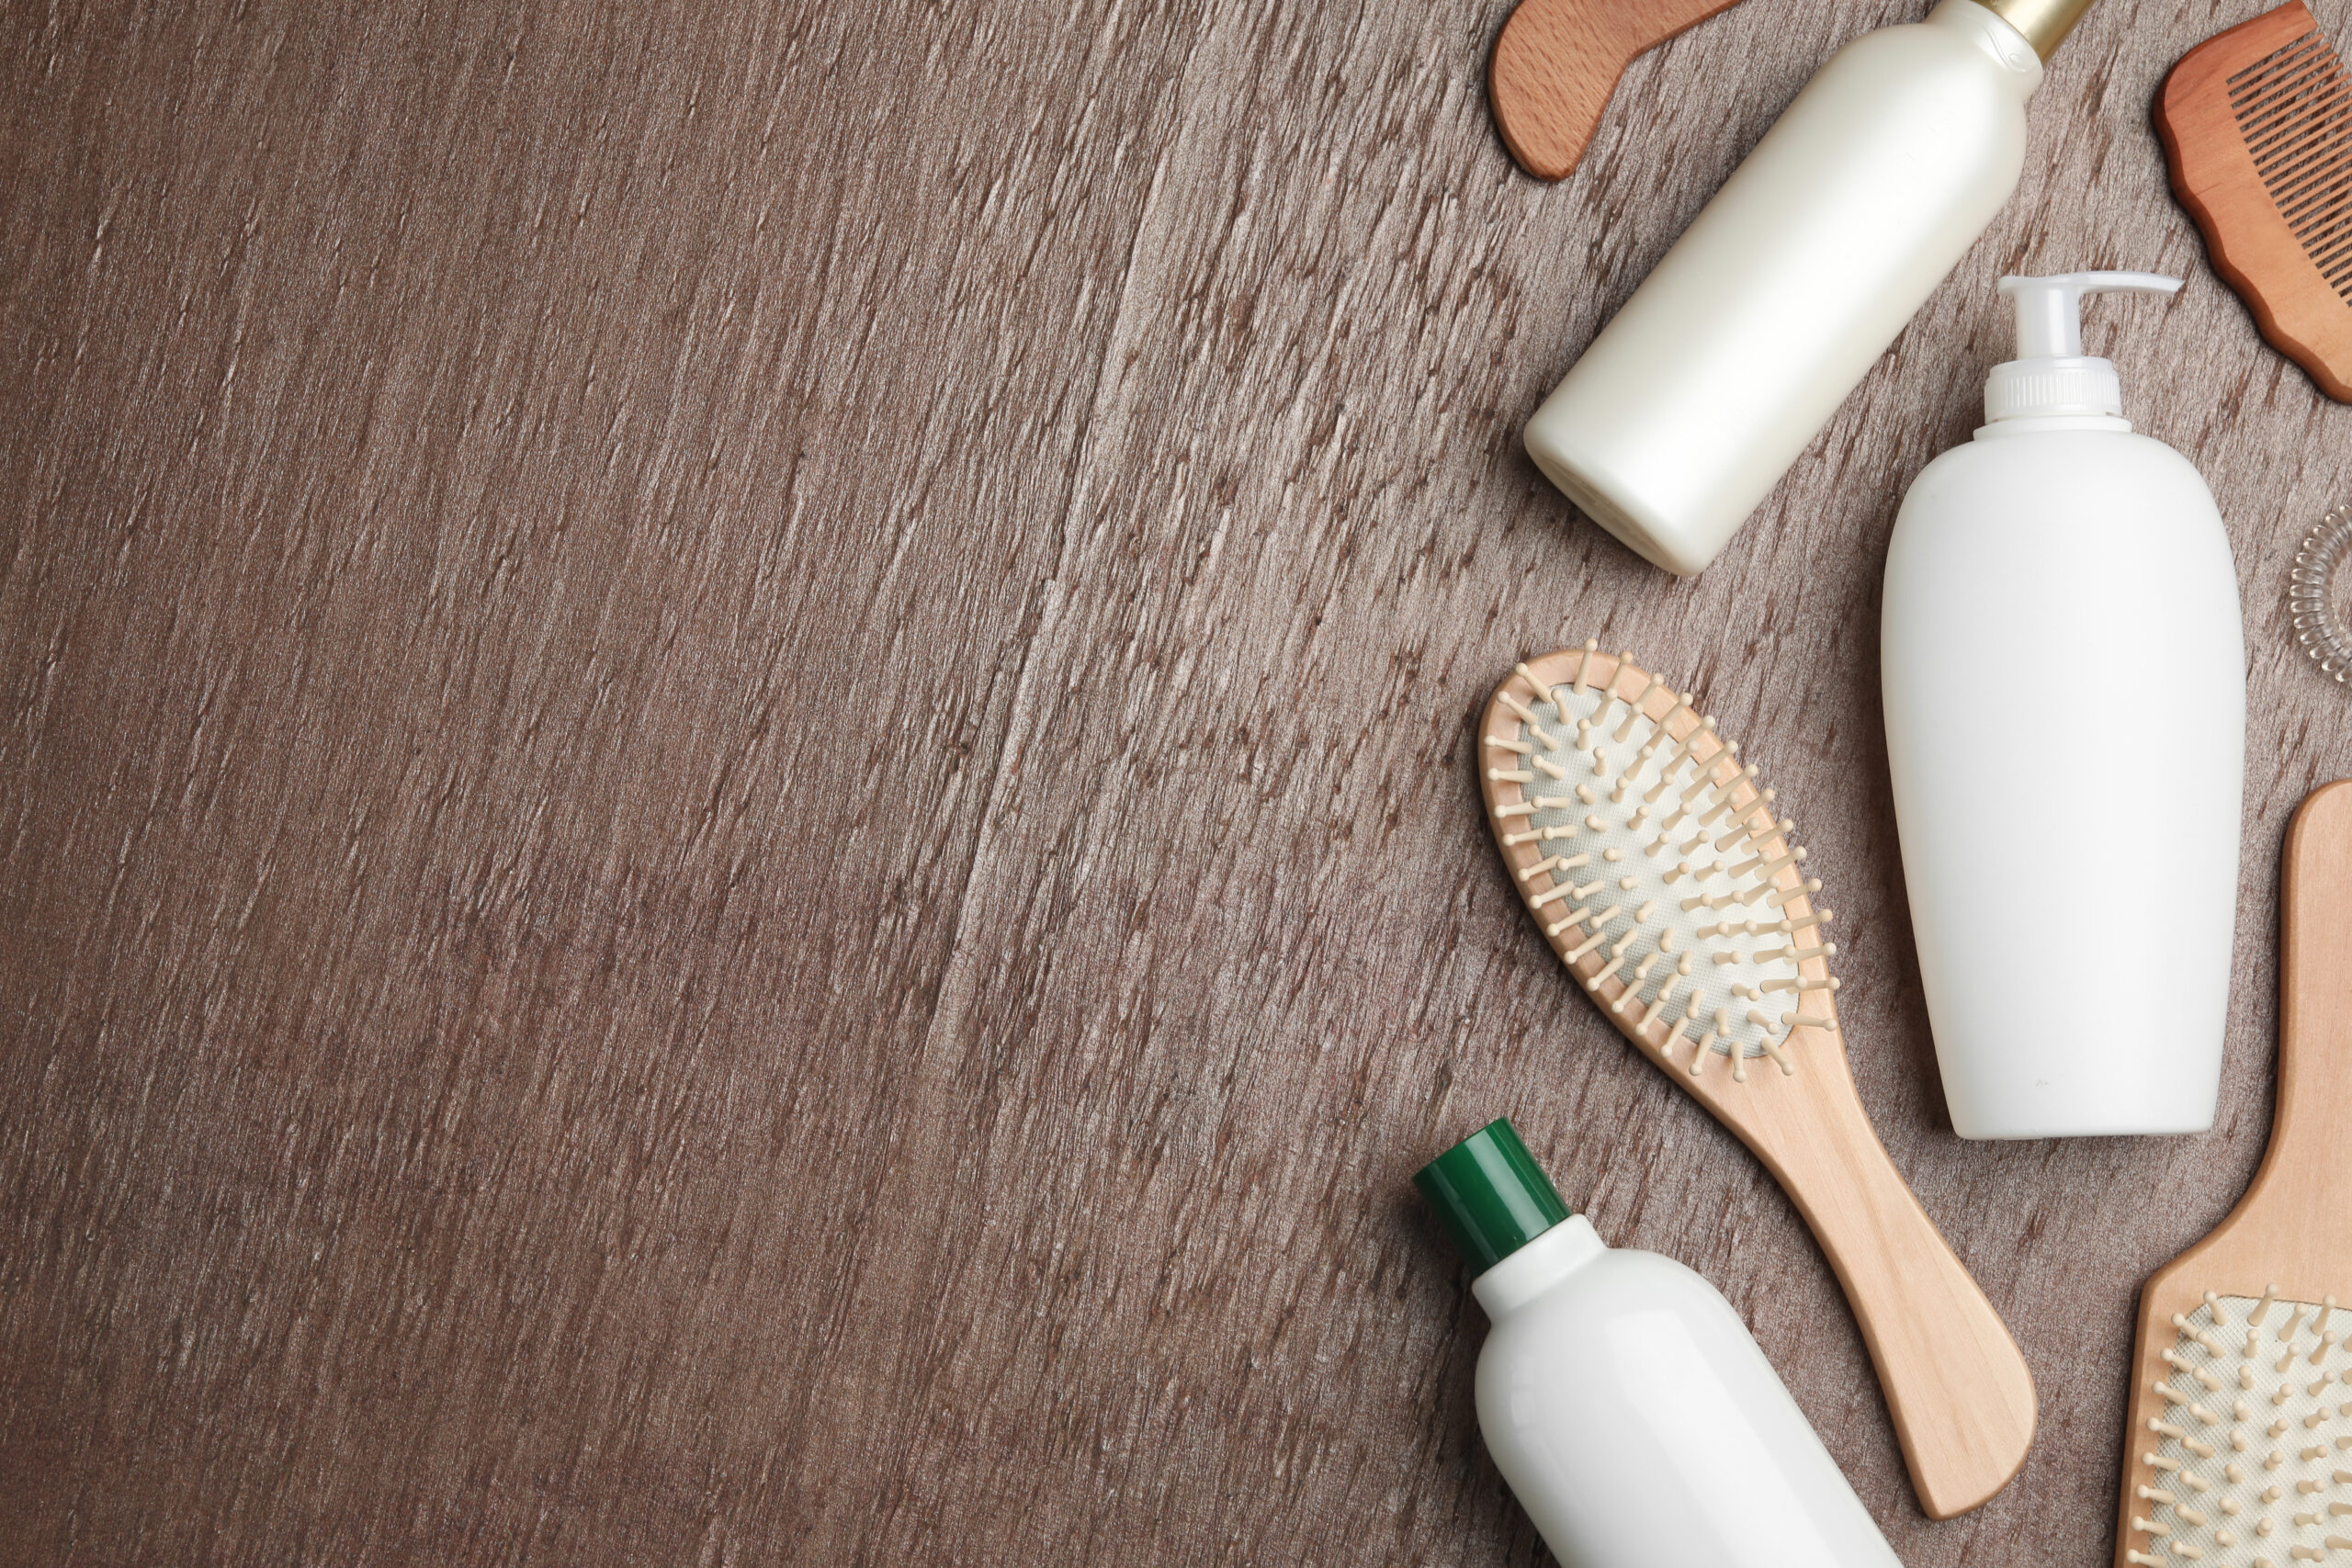 Flat lay composition with hair cosmetic products and tools on brown background. Space for text